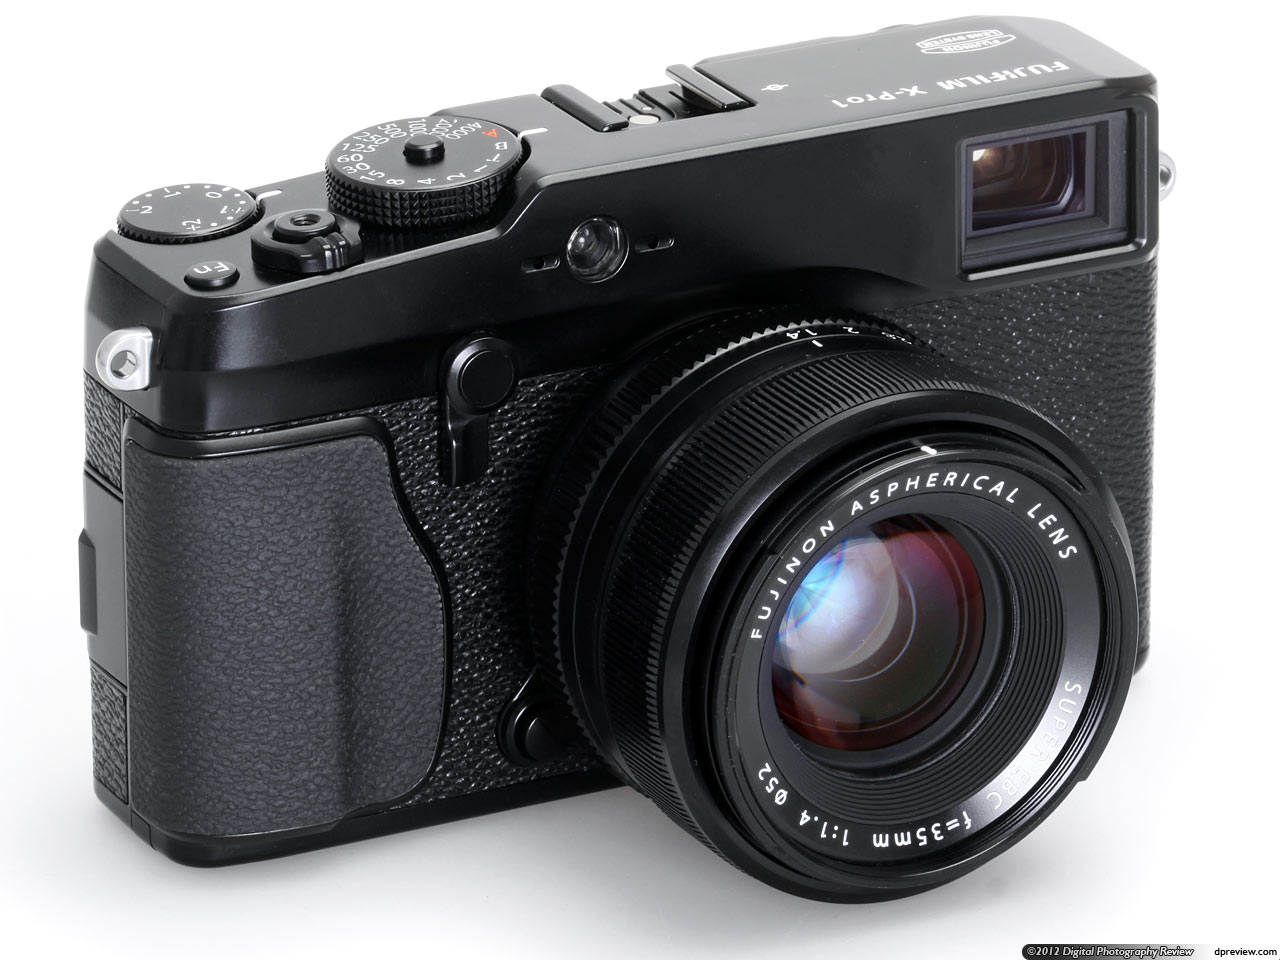 Fuji Fuji Fujifilm X Pro1 In Depth Review Digital Photography Review